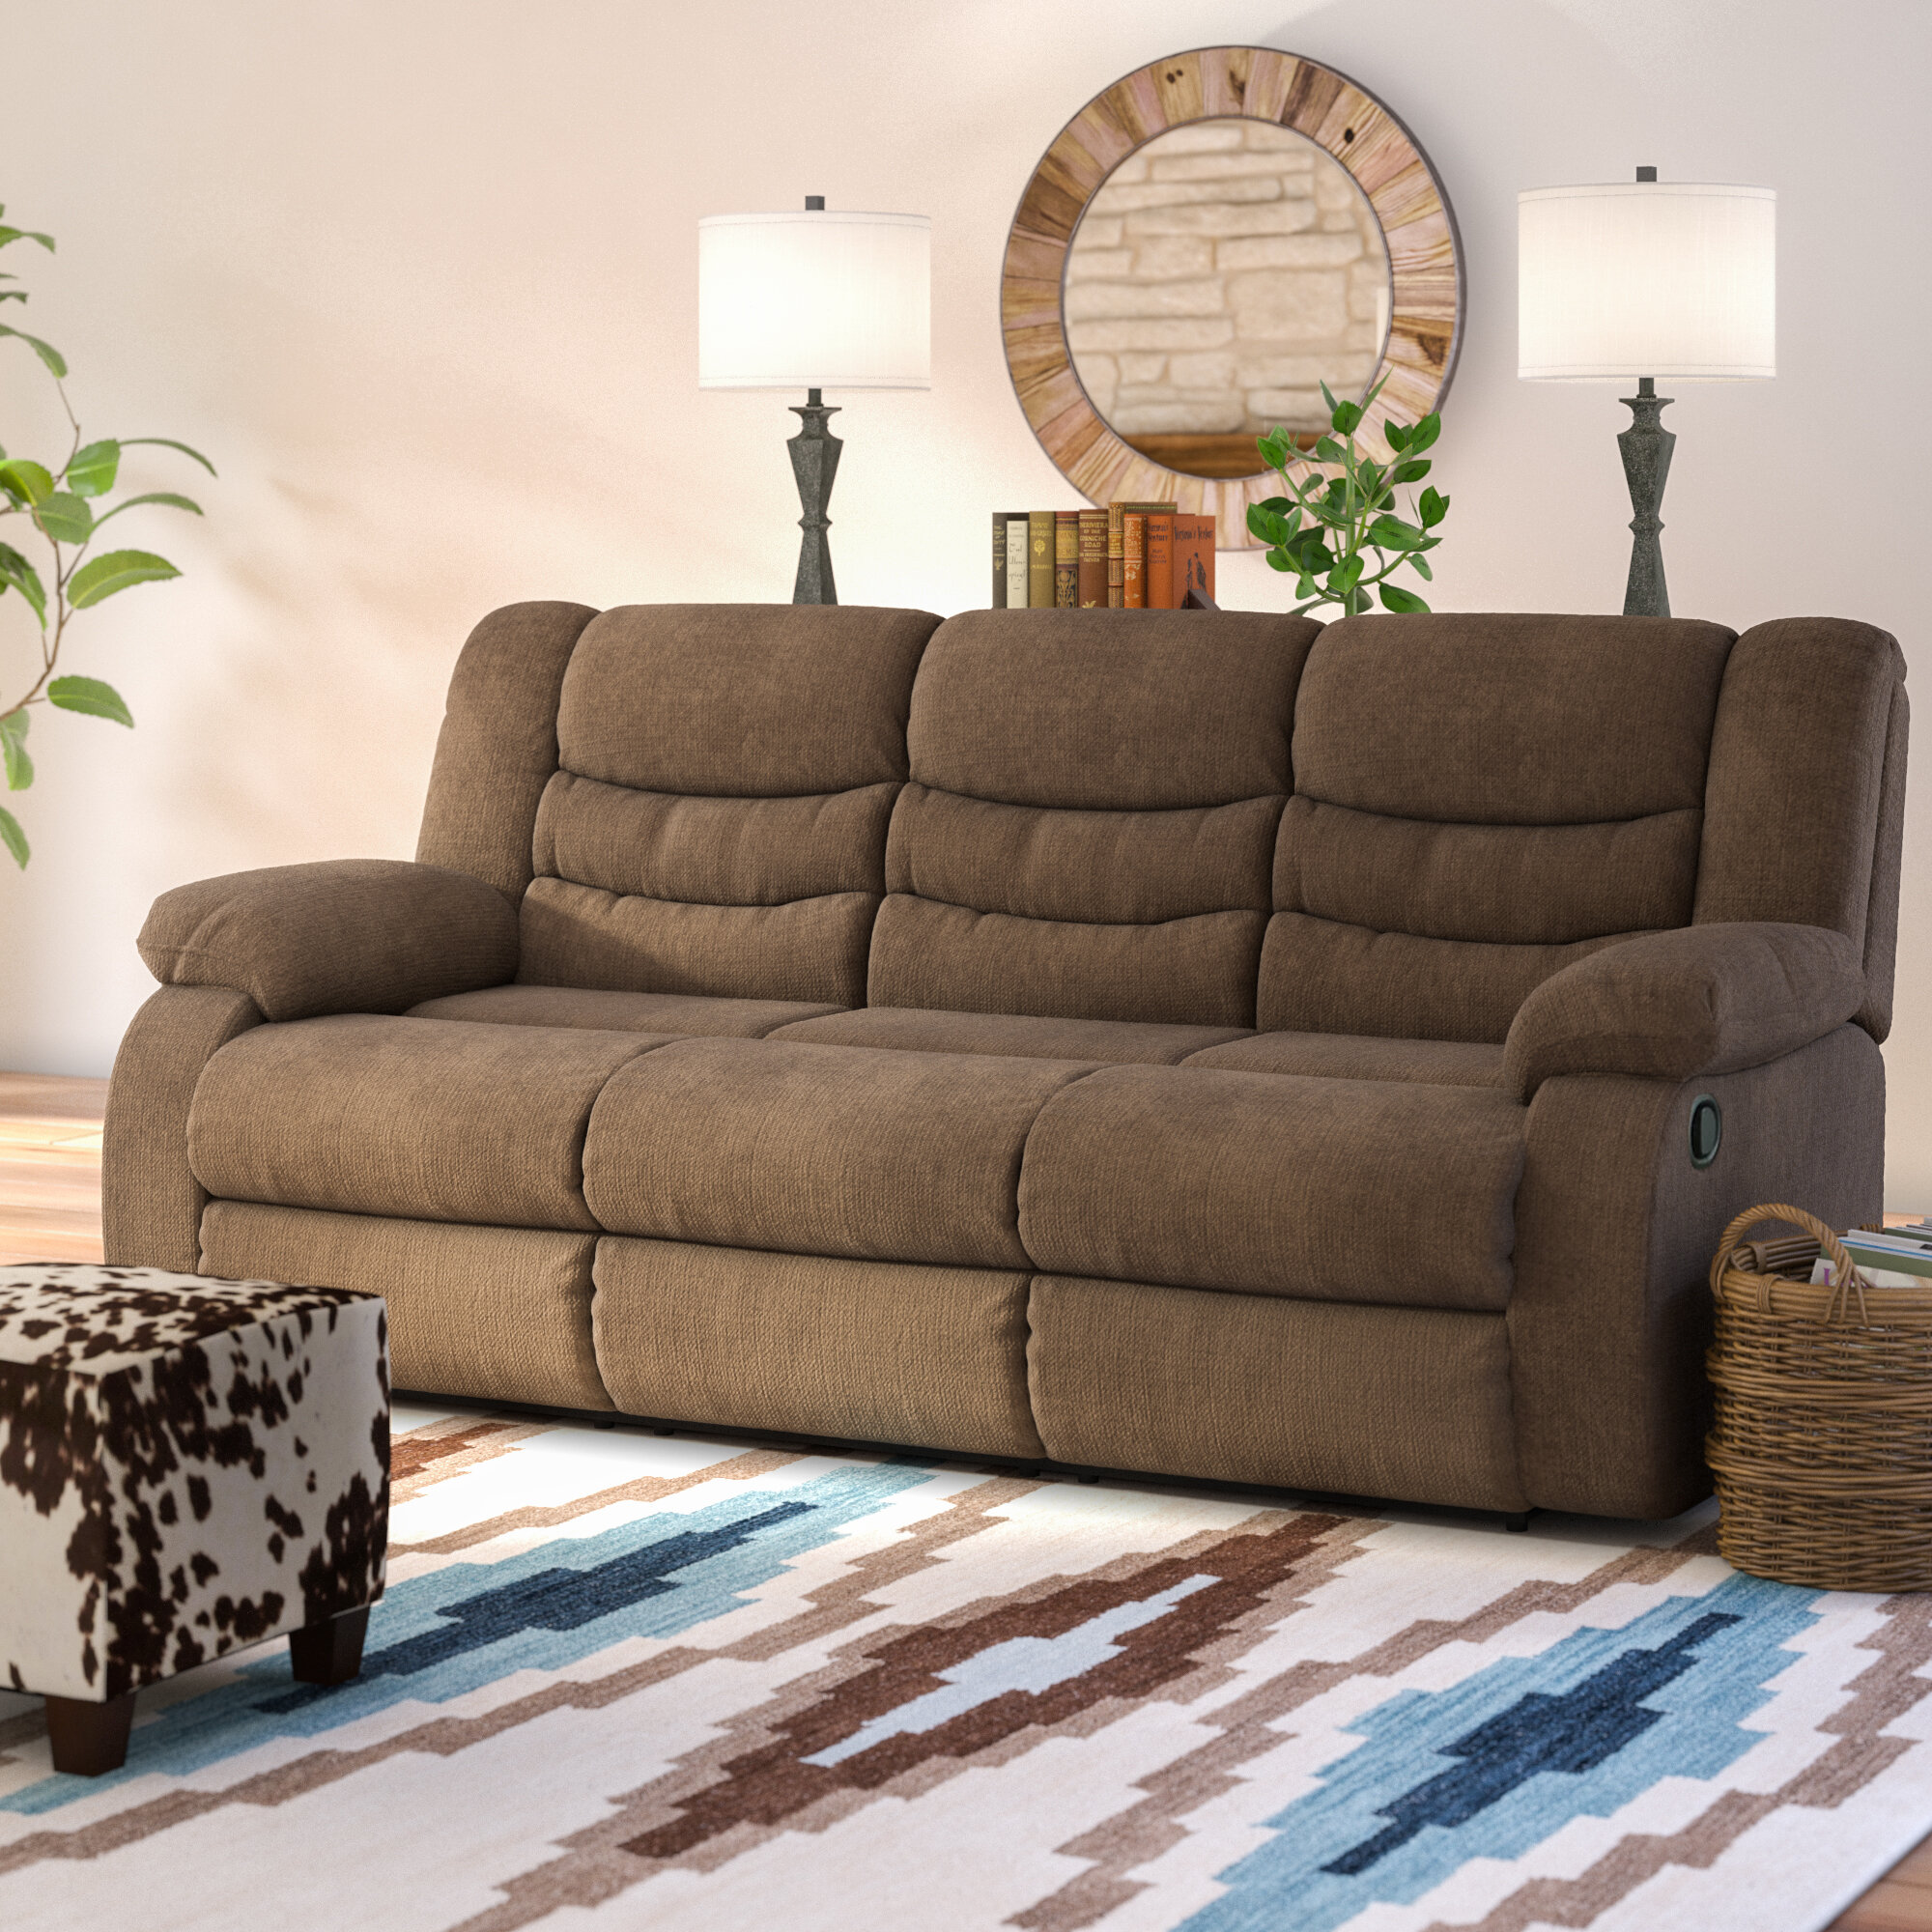 Reclining Living Room Furniture.  Loon Peak Ridgemont Reclining Sofa Reviews Wayfair